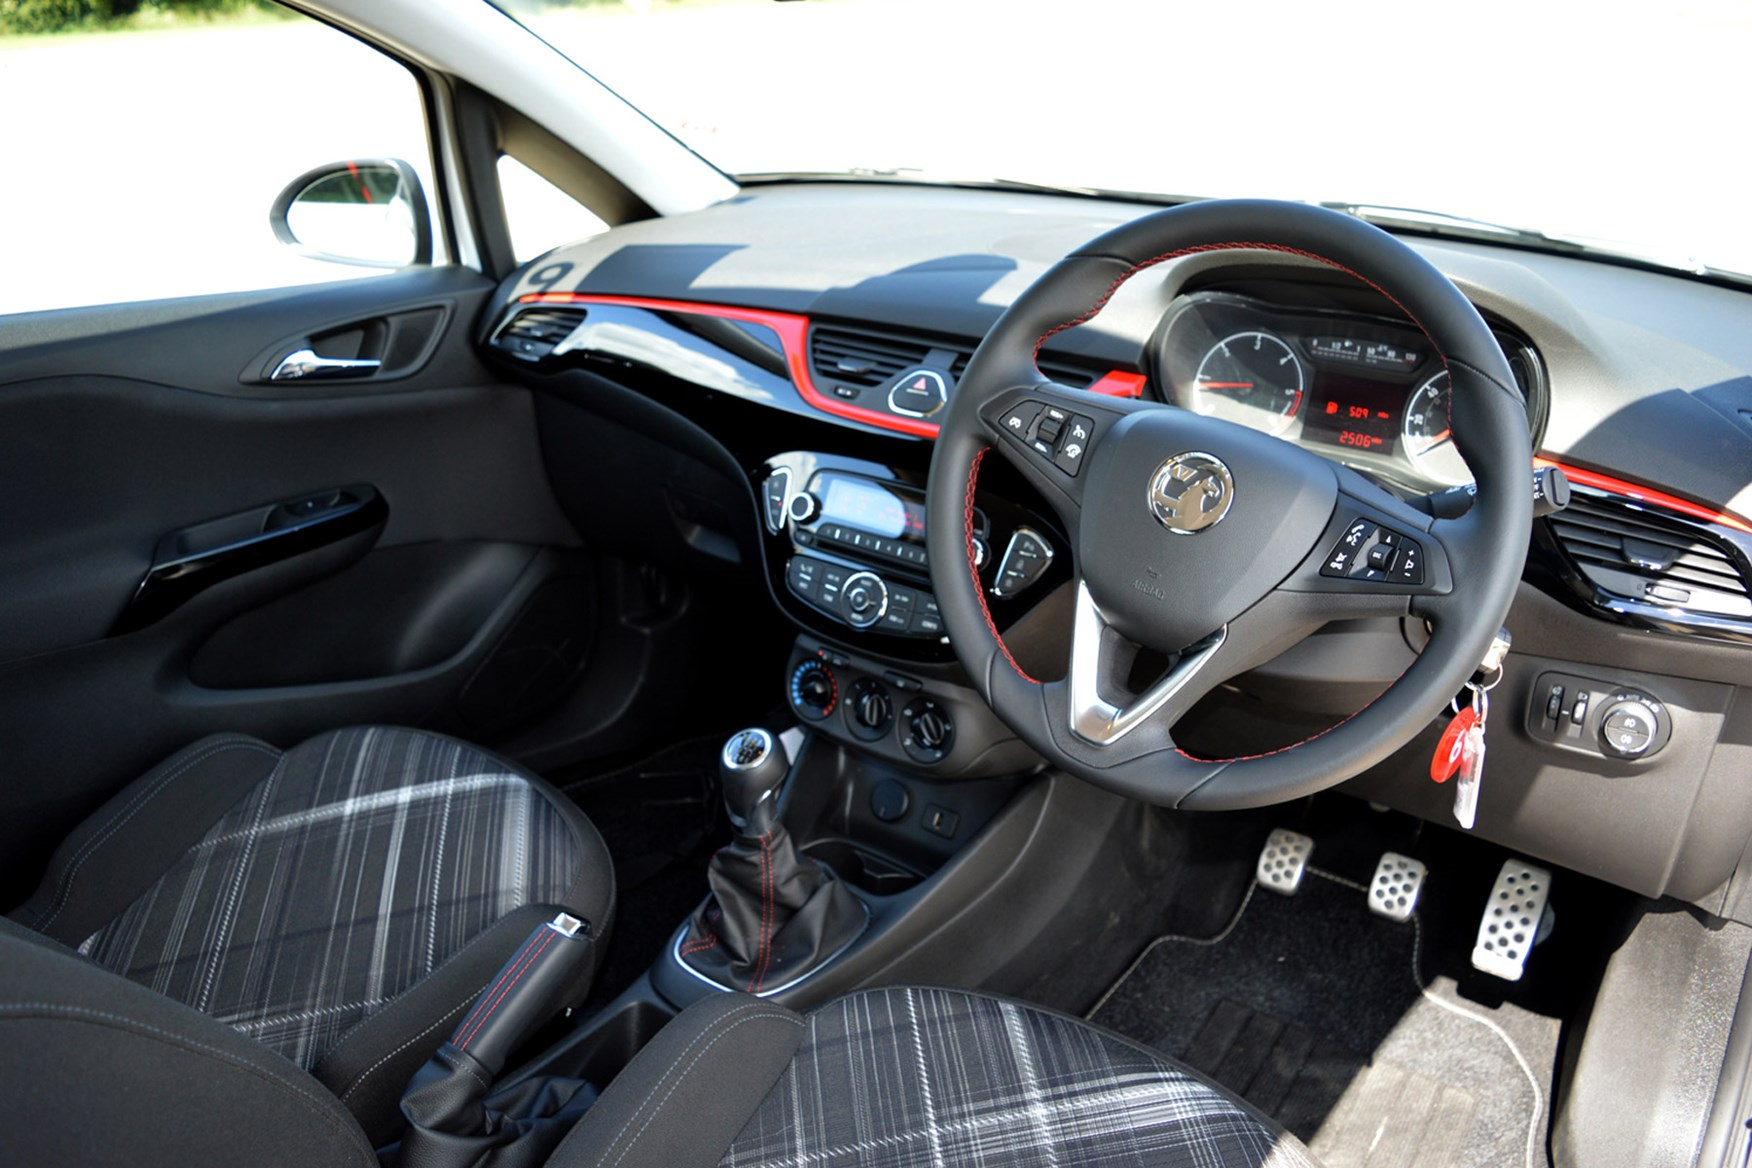 Vauxhall Corsa full review on Parkers Vans - interior